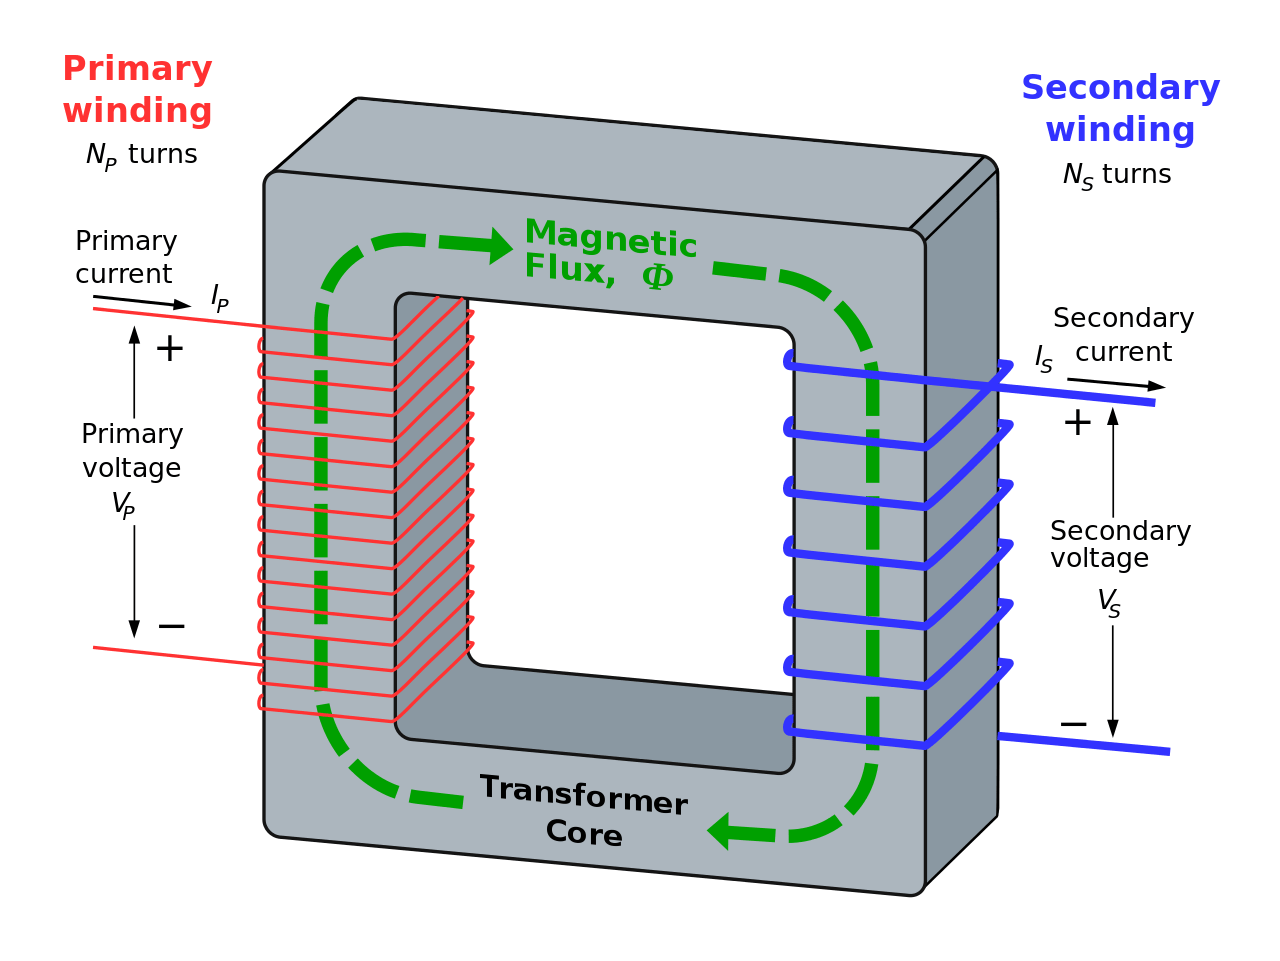 hight resolution of 1 a simple diagram of a transformer source wikimedia commons